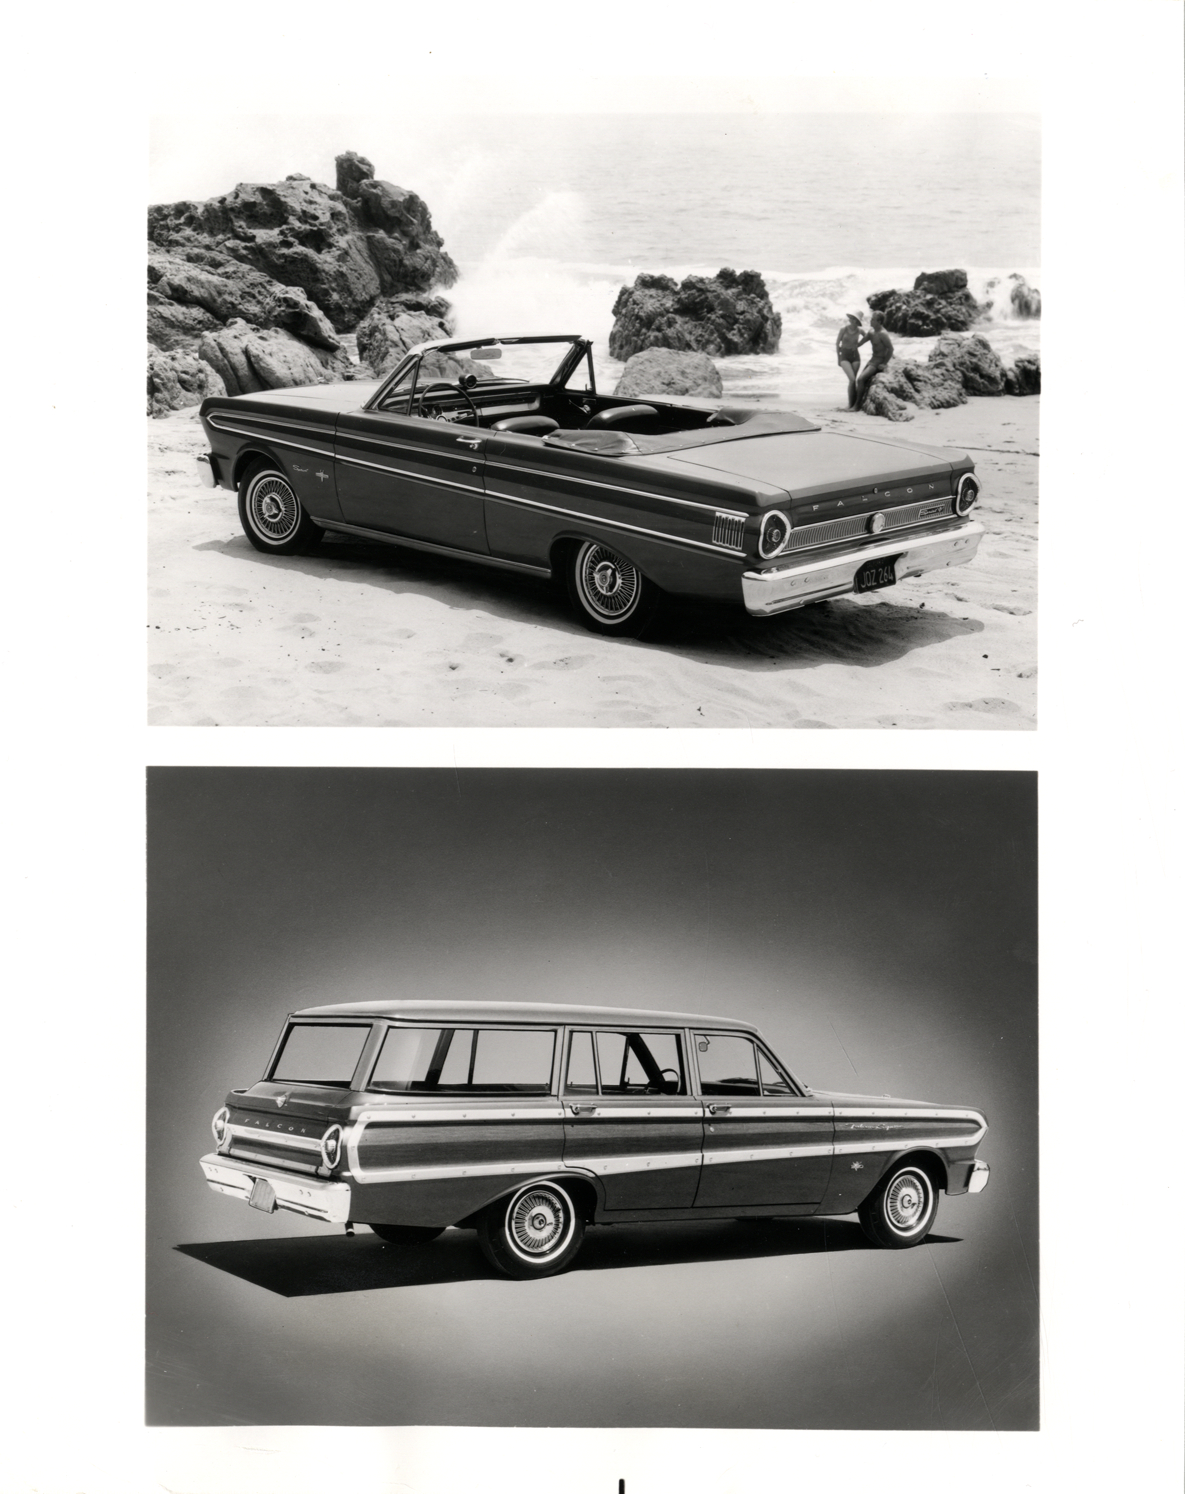 1964 Ford Falcon Sprint Automobile And Squire Station Wagon